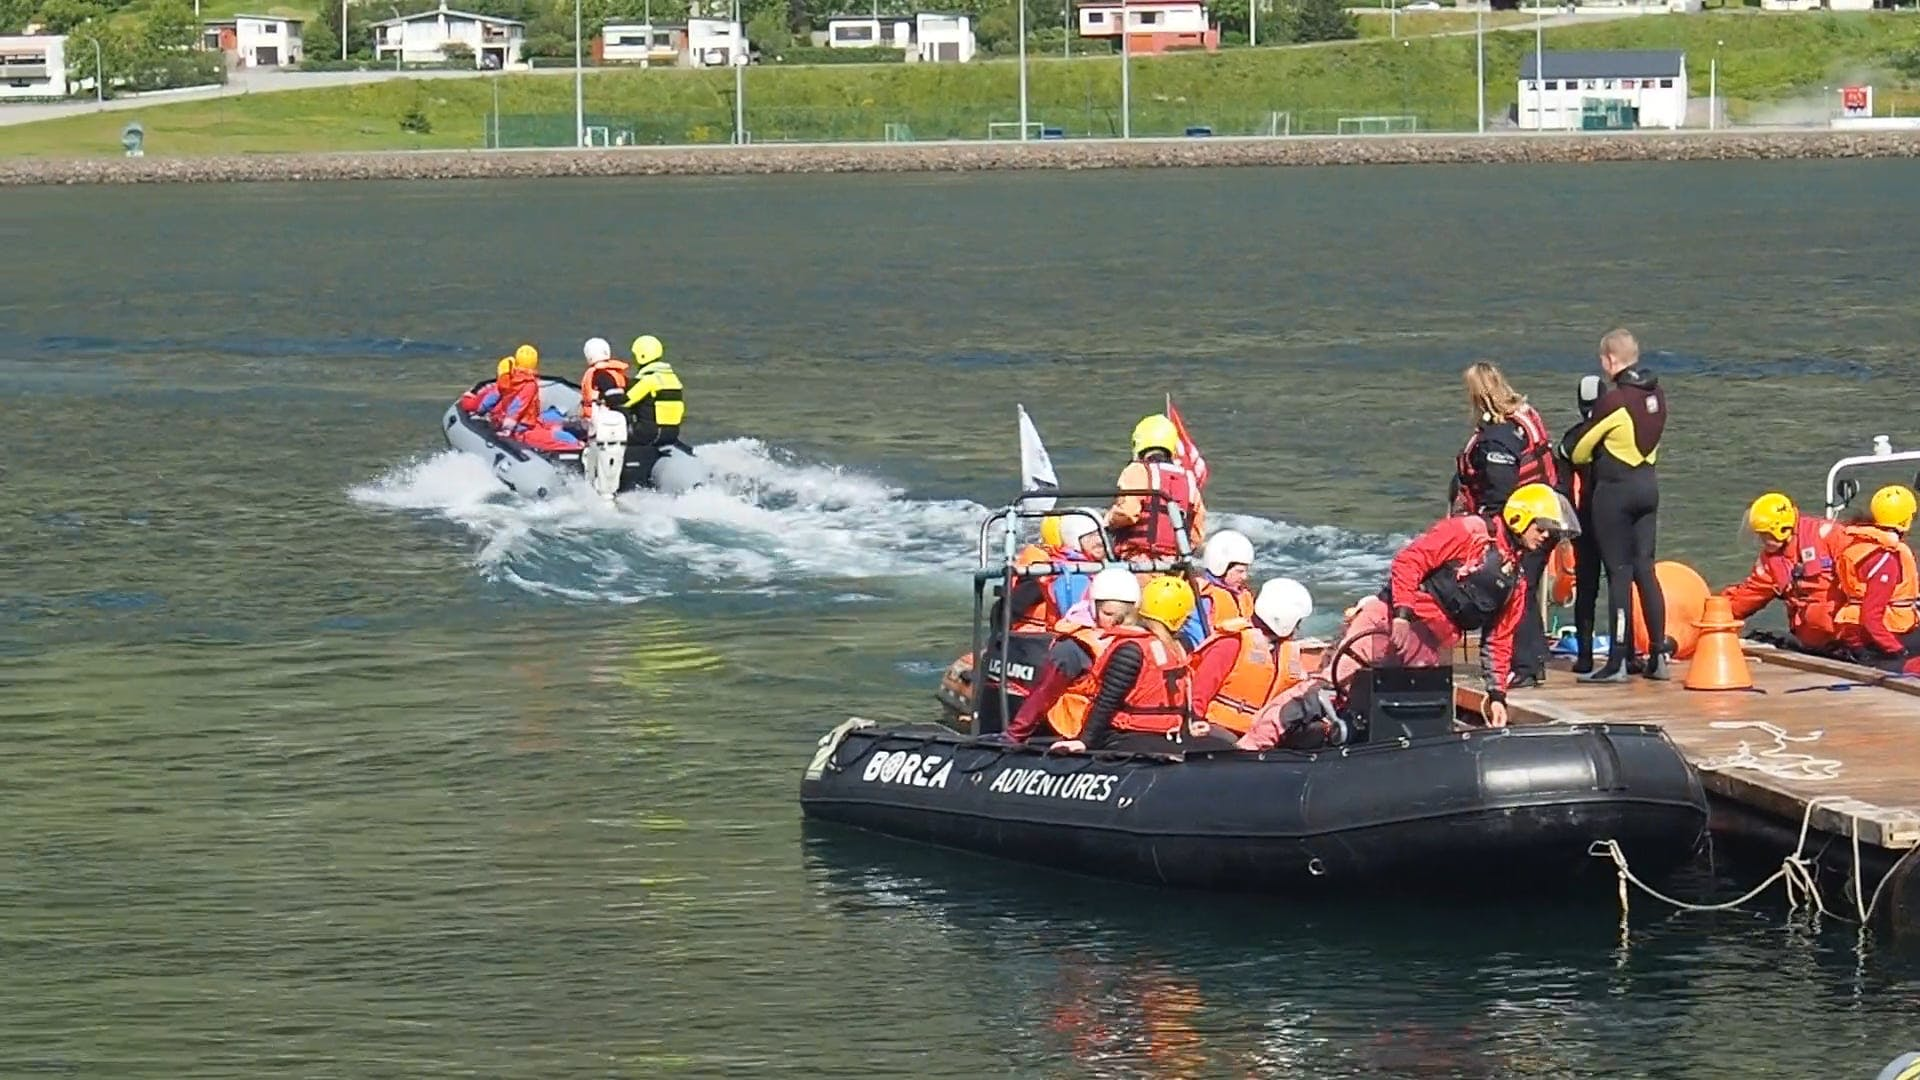 Motorboats In Action